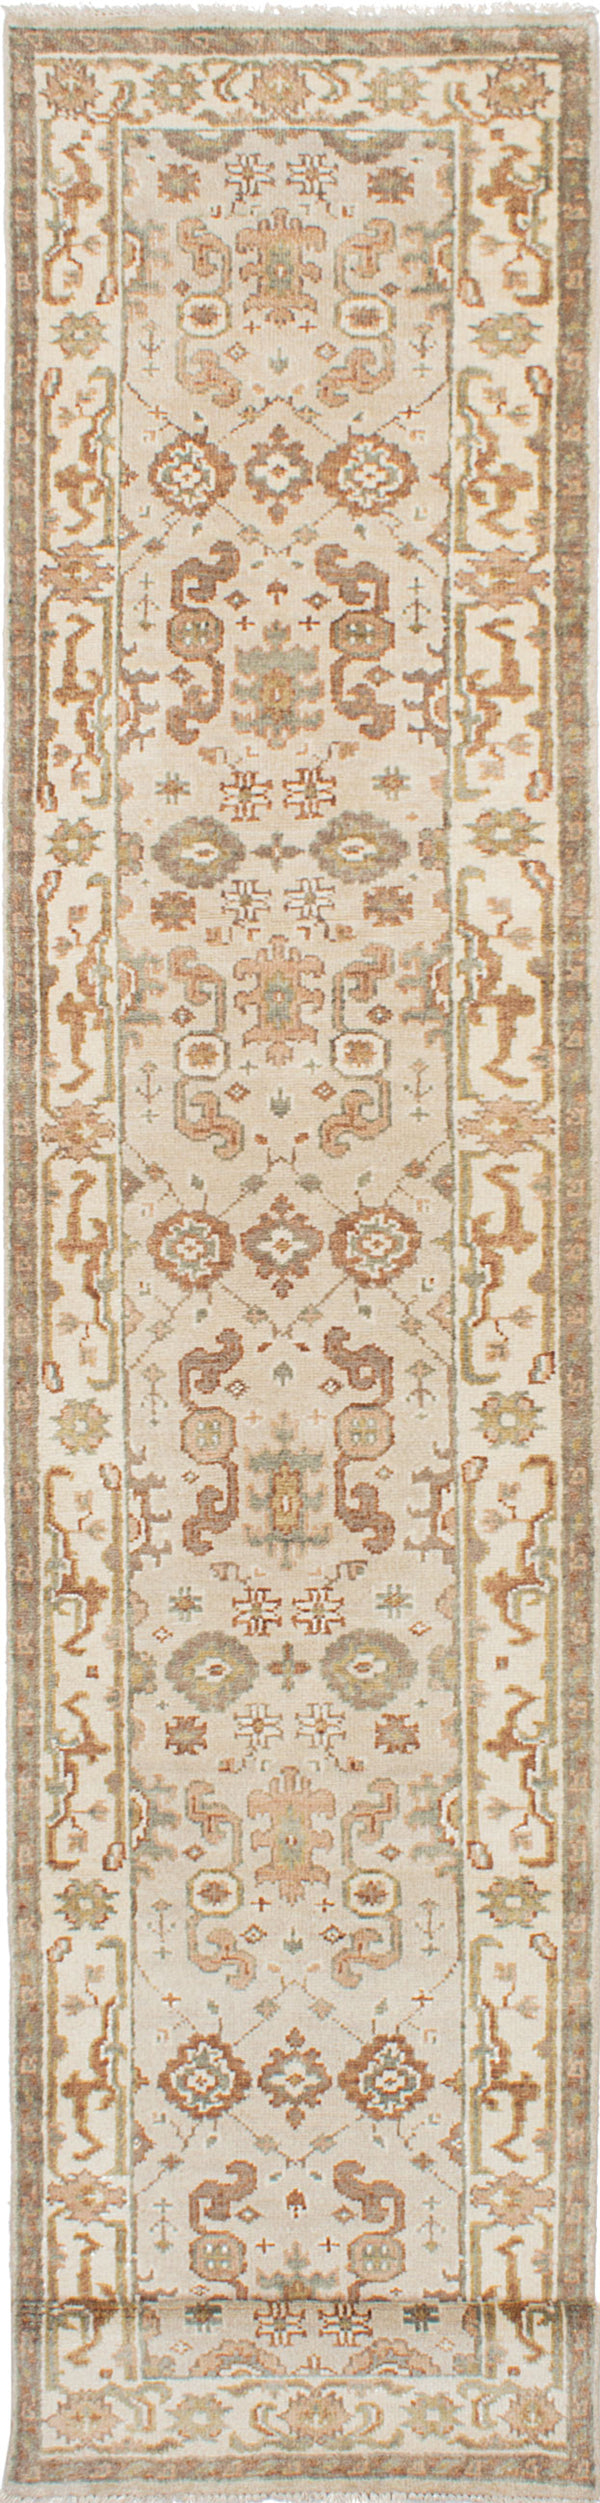 Hand-knotted Indian Floral  Traditional Royal-Ushak Runner rug  Beige, Light Grey 2.6 x 15.8